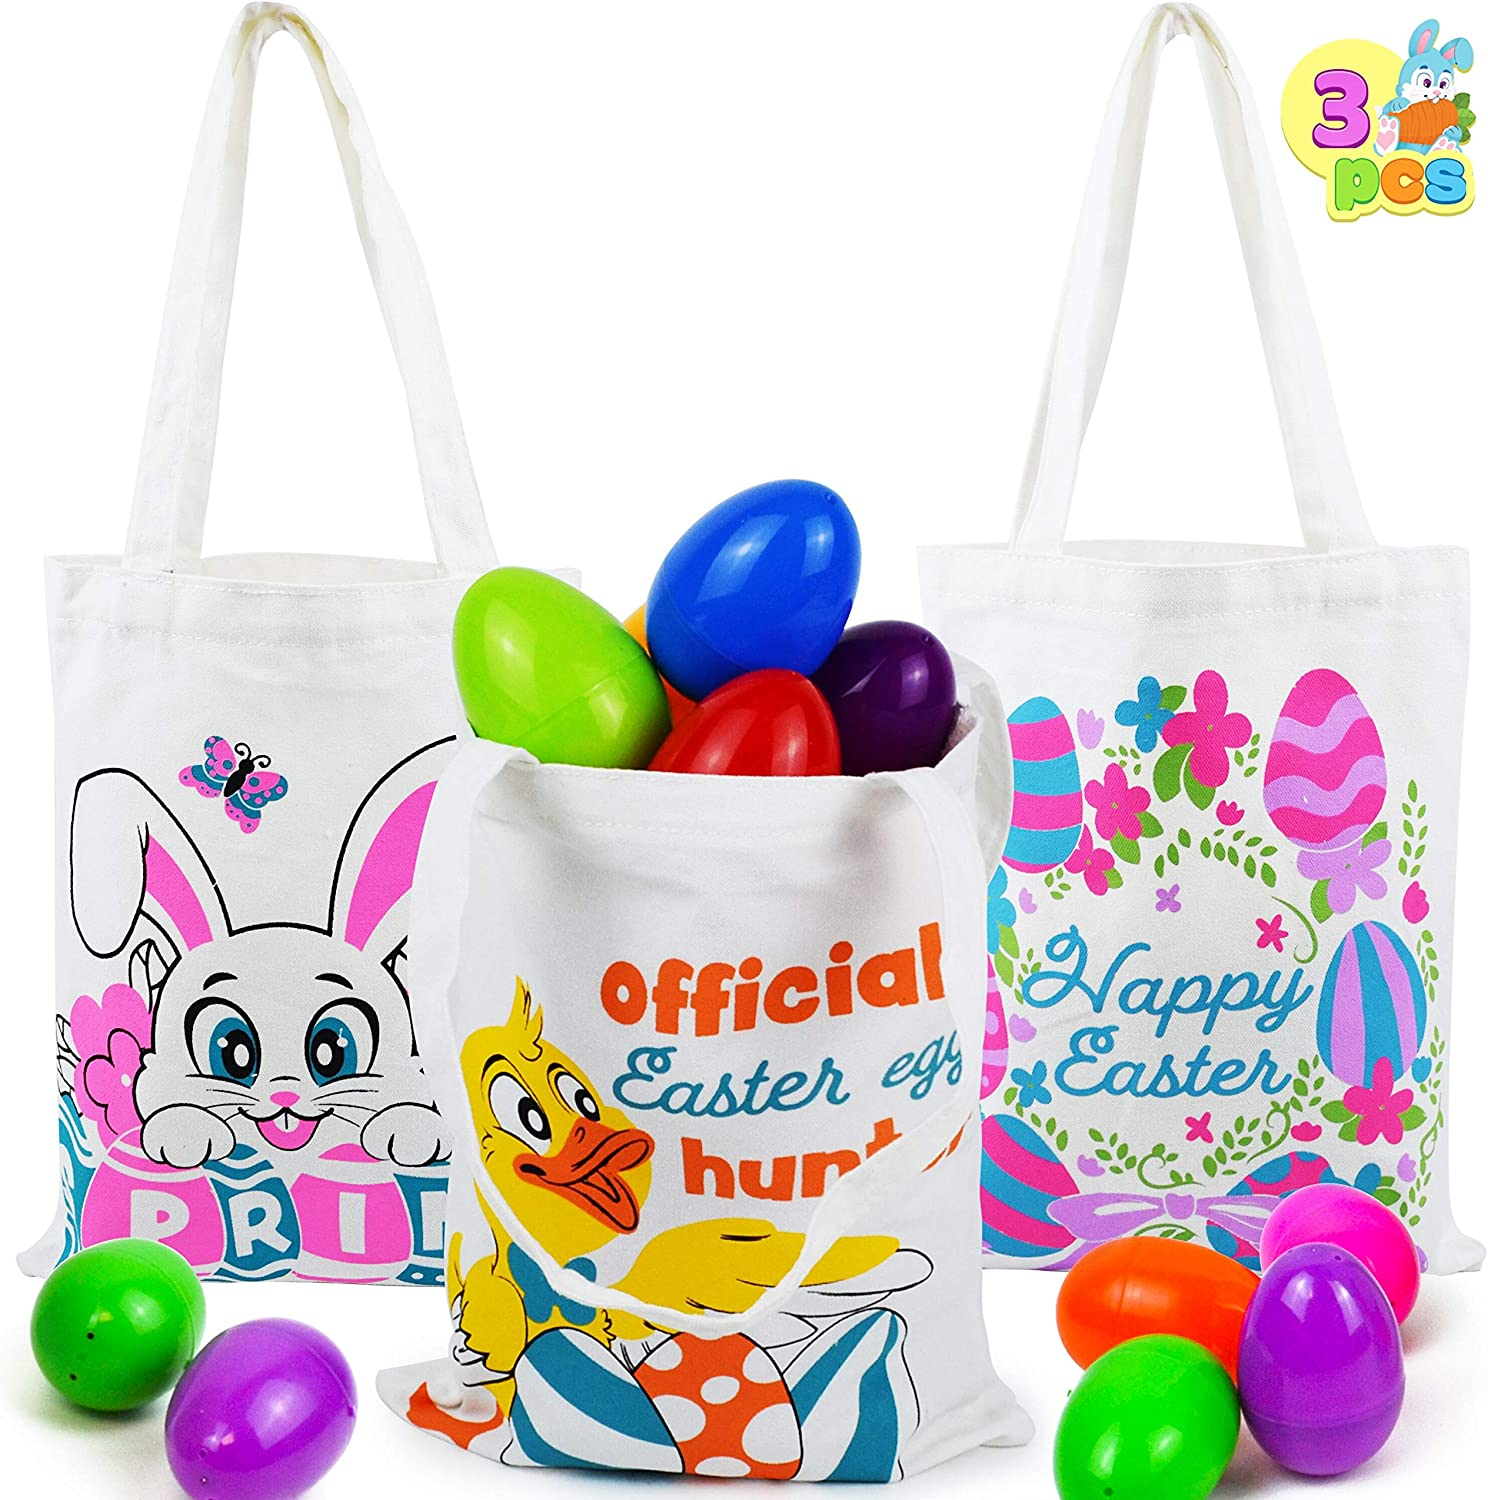 Easter Basket Easter Kids Party Favor Supplies Easter Party Gift Goodie Bags with Handles for Easter Egg Hunt 3 Pcs Easter Cotton Tote Bags Easter Reusable Canvas Grocery Bags for Easter Eggs Hunt